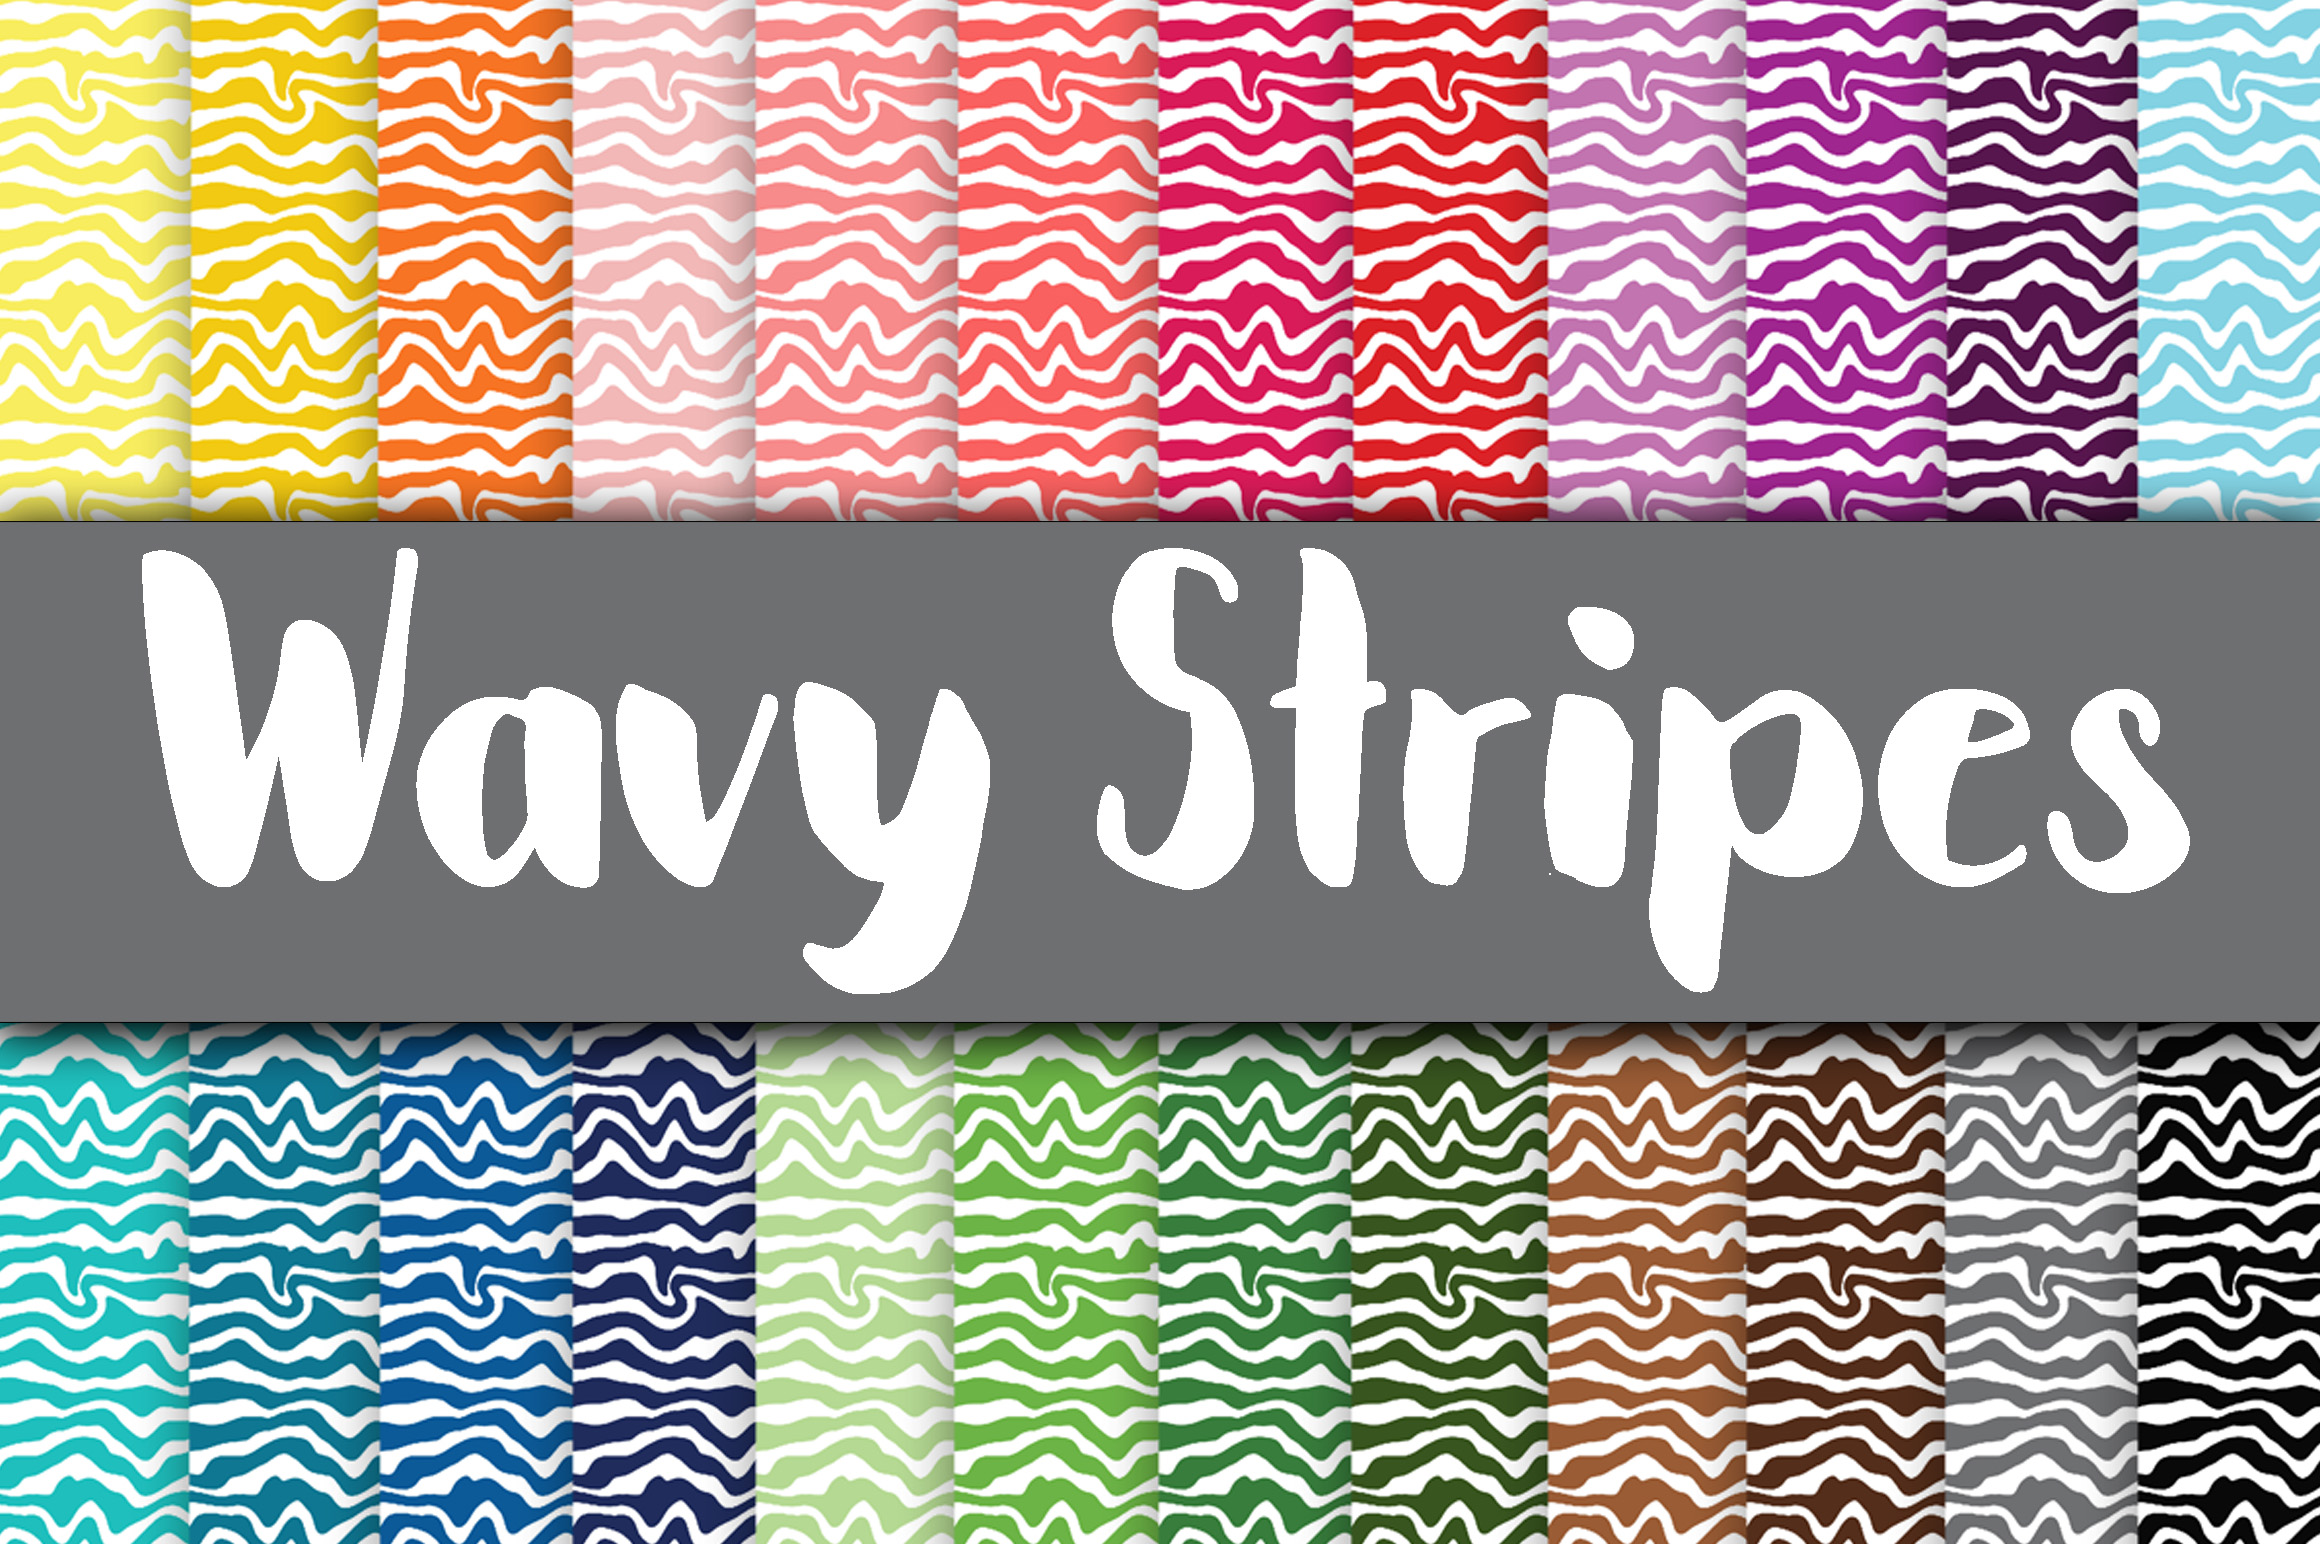 Wavy Stripes Digital Paper Graphic Backgrounds By oldmarketdesigns